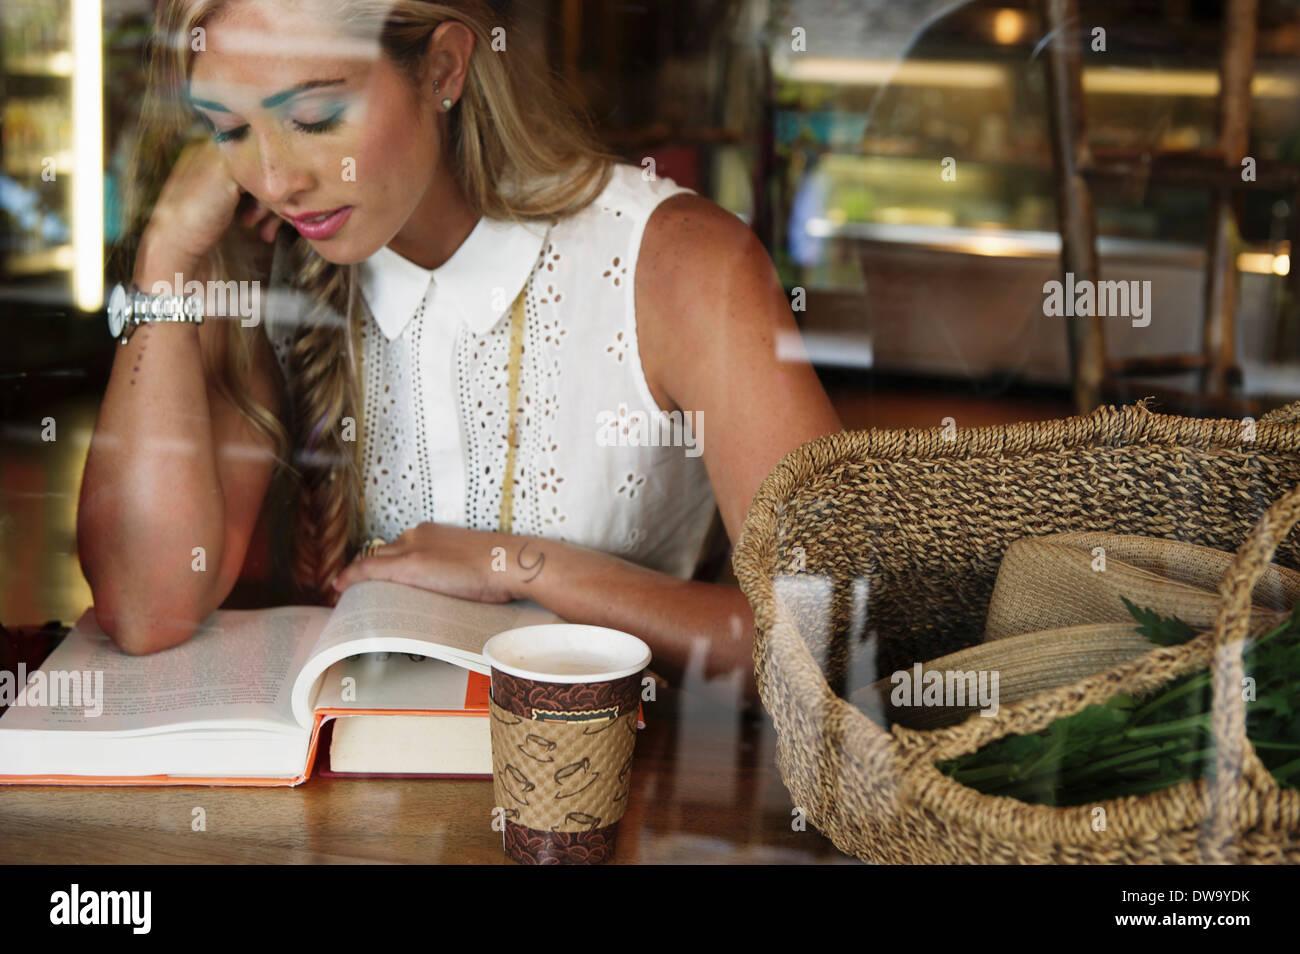 Young Woman Reading in cafe Photo Stock